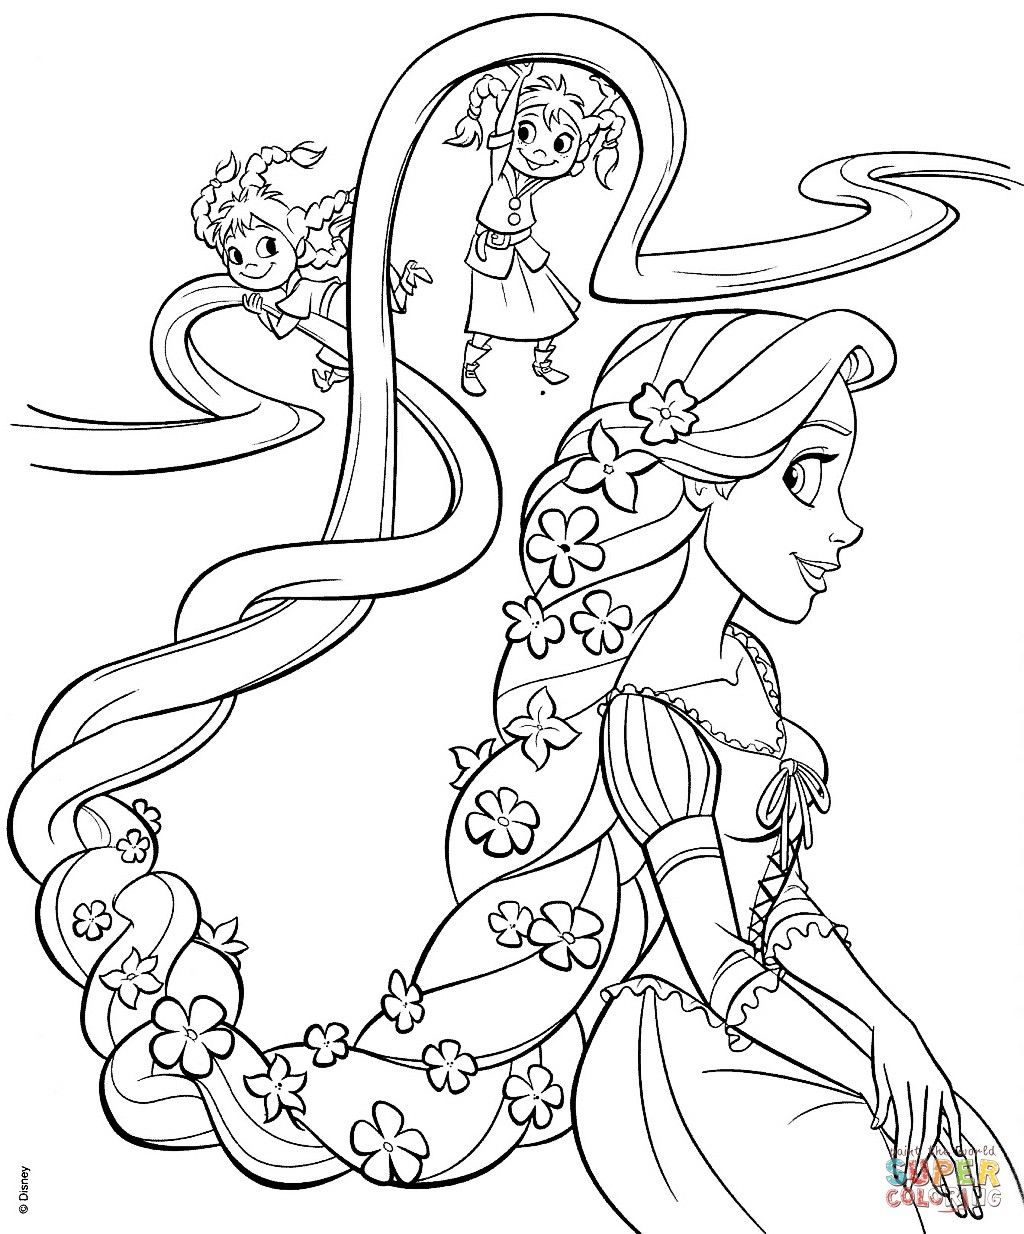 Disney Princess Coloring Pages To Print Rapunzel From The Thousands Of Photographs Disney Princess Coloring Pages Tangled Coloring Pages Ariel Coloring Pages